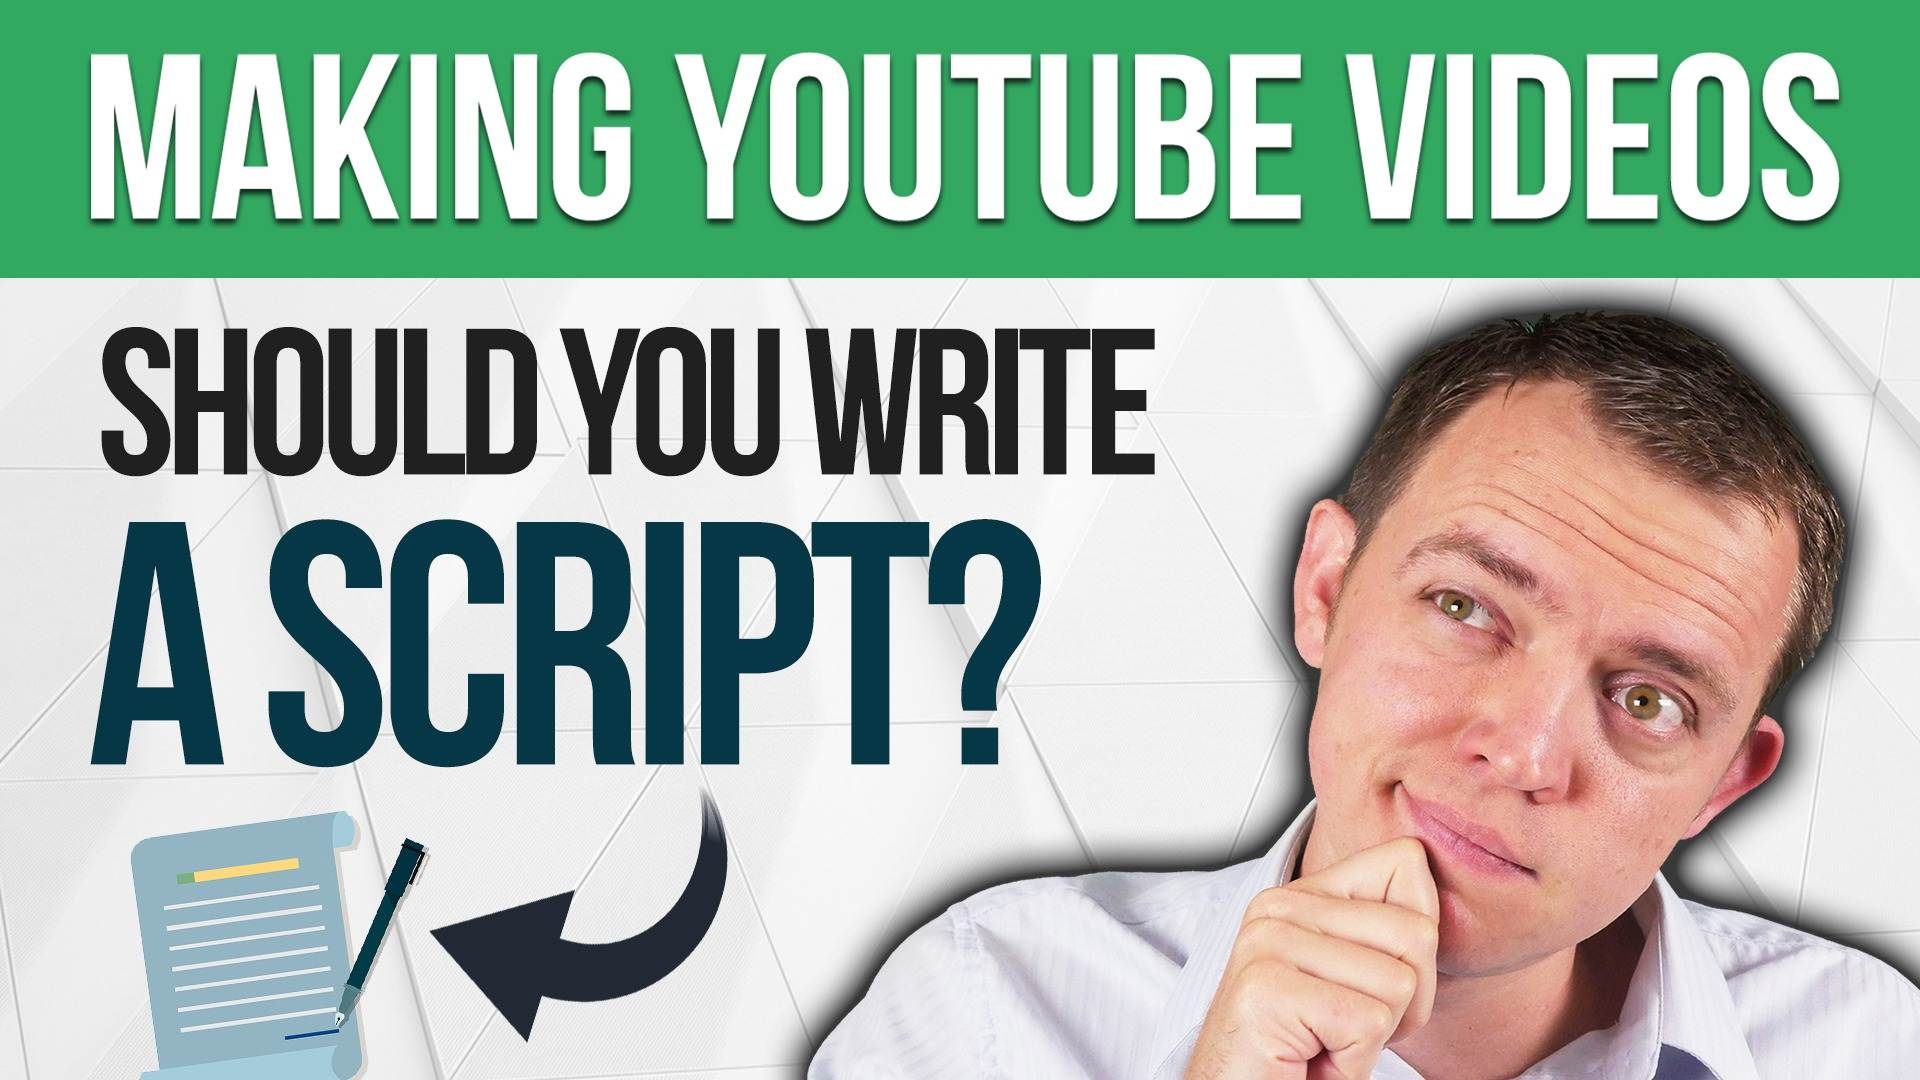 Should You Write a Script for Your YouTube Videos